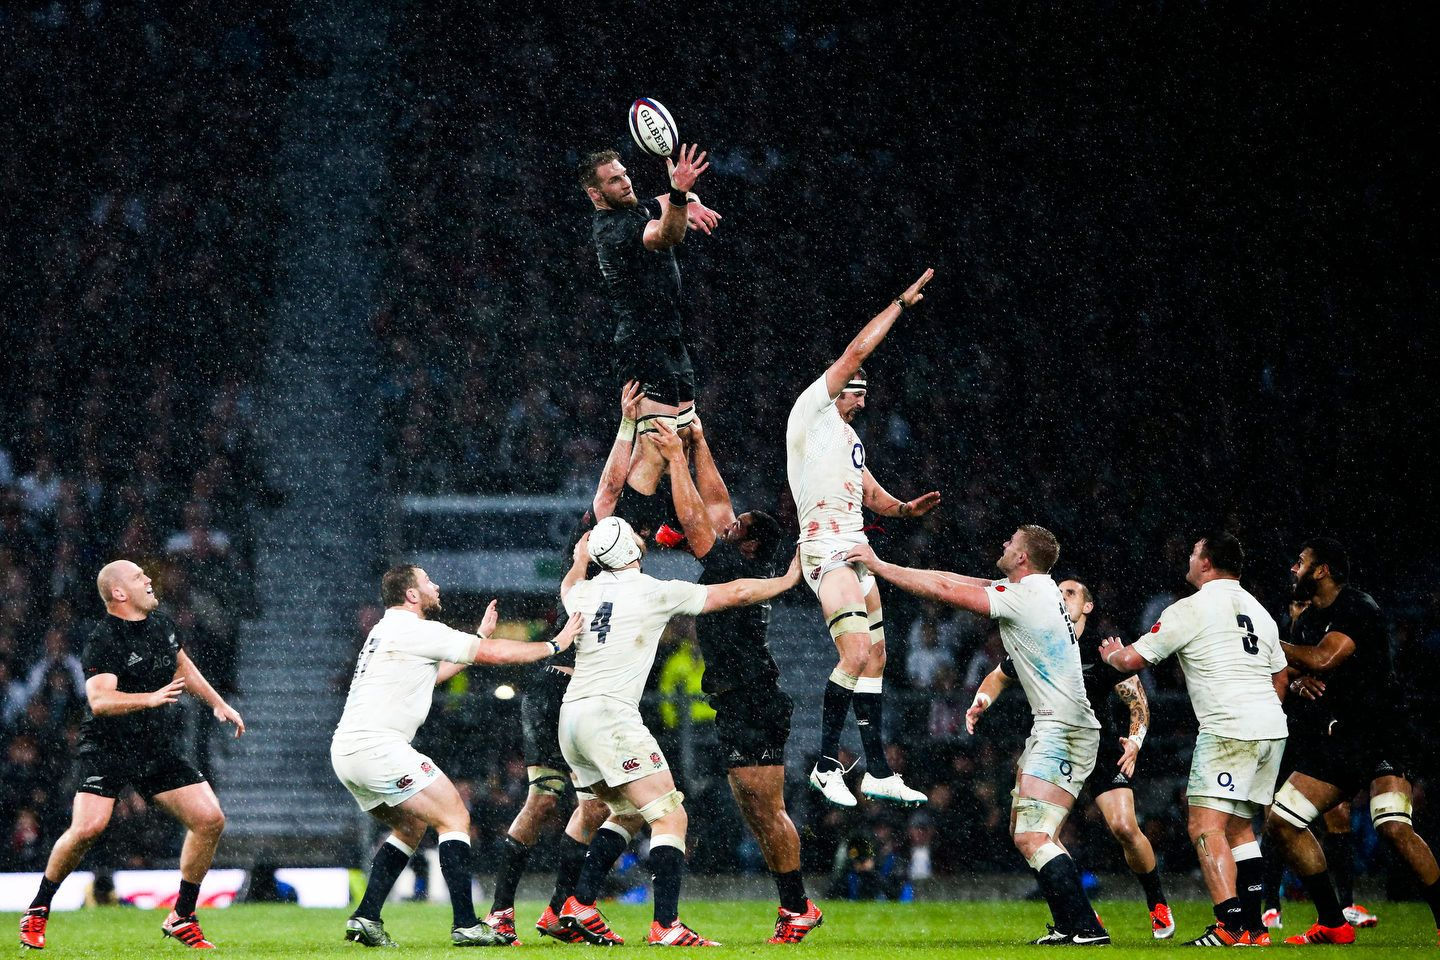 QBE Autumn Internationals - England vs New Zealand - Twickenham Stadium  - London - 02/11/2013